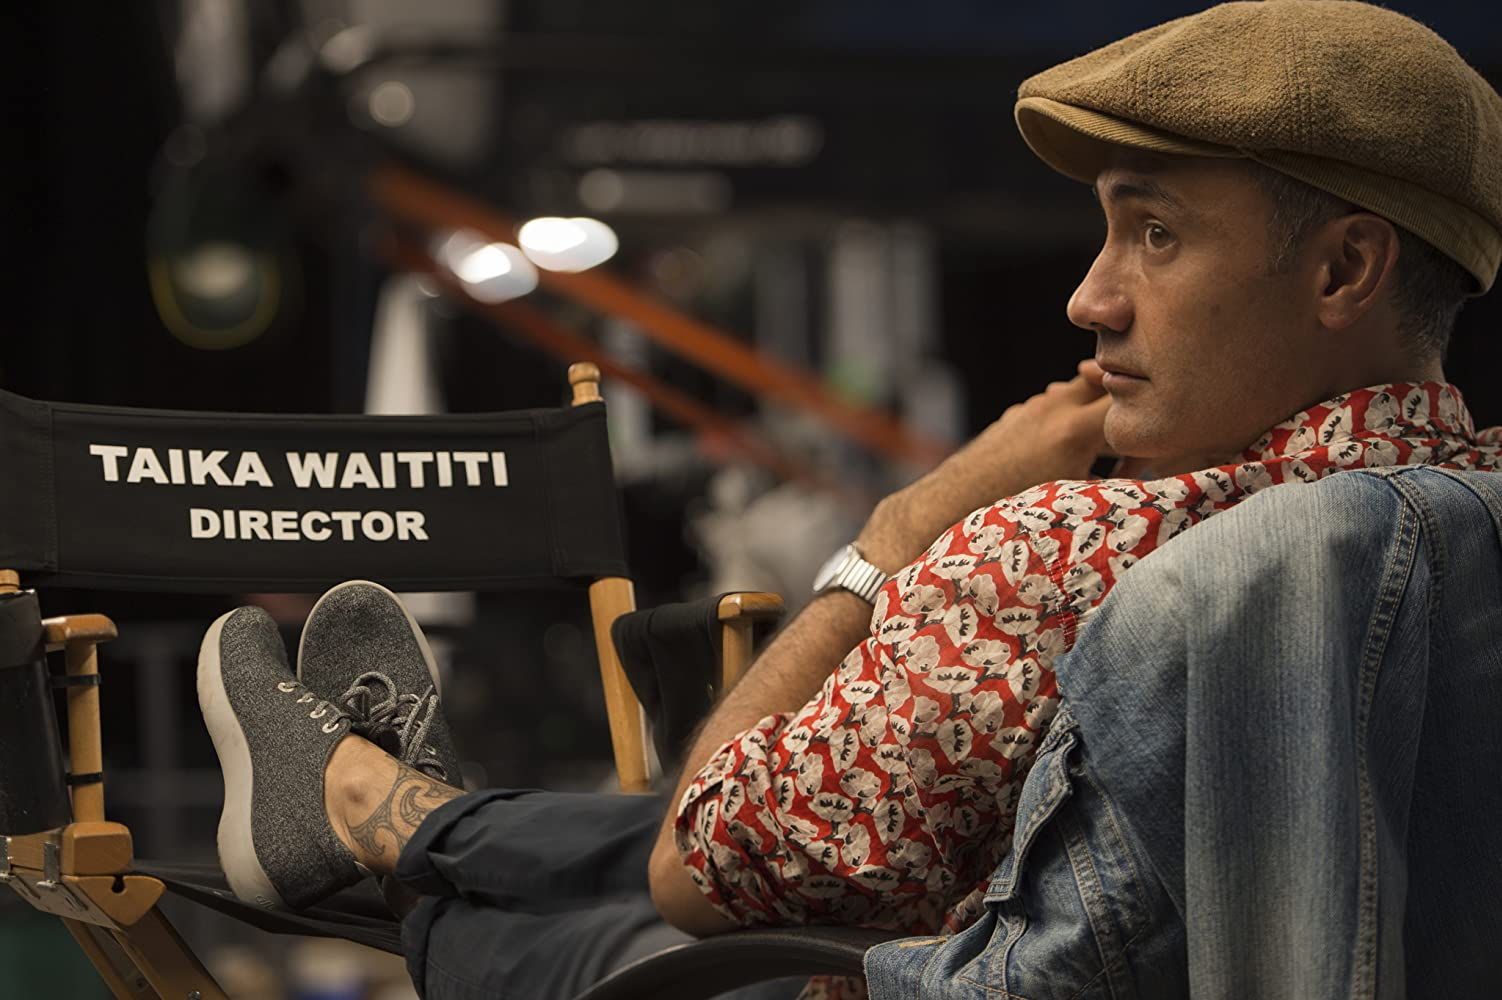 [News] Taika Waititi to Direct and Co-Write New STAR WARS Feature Film